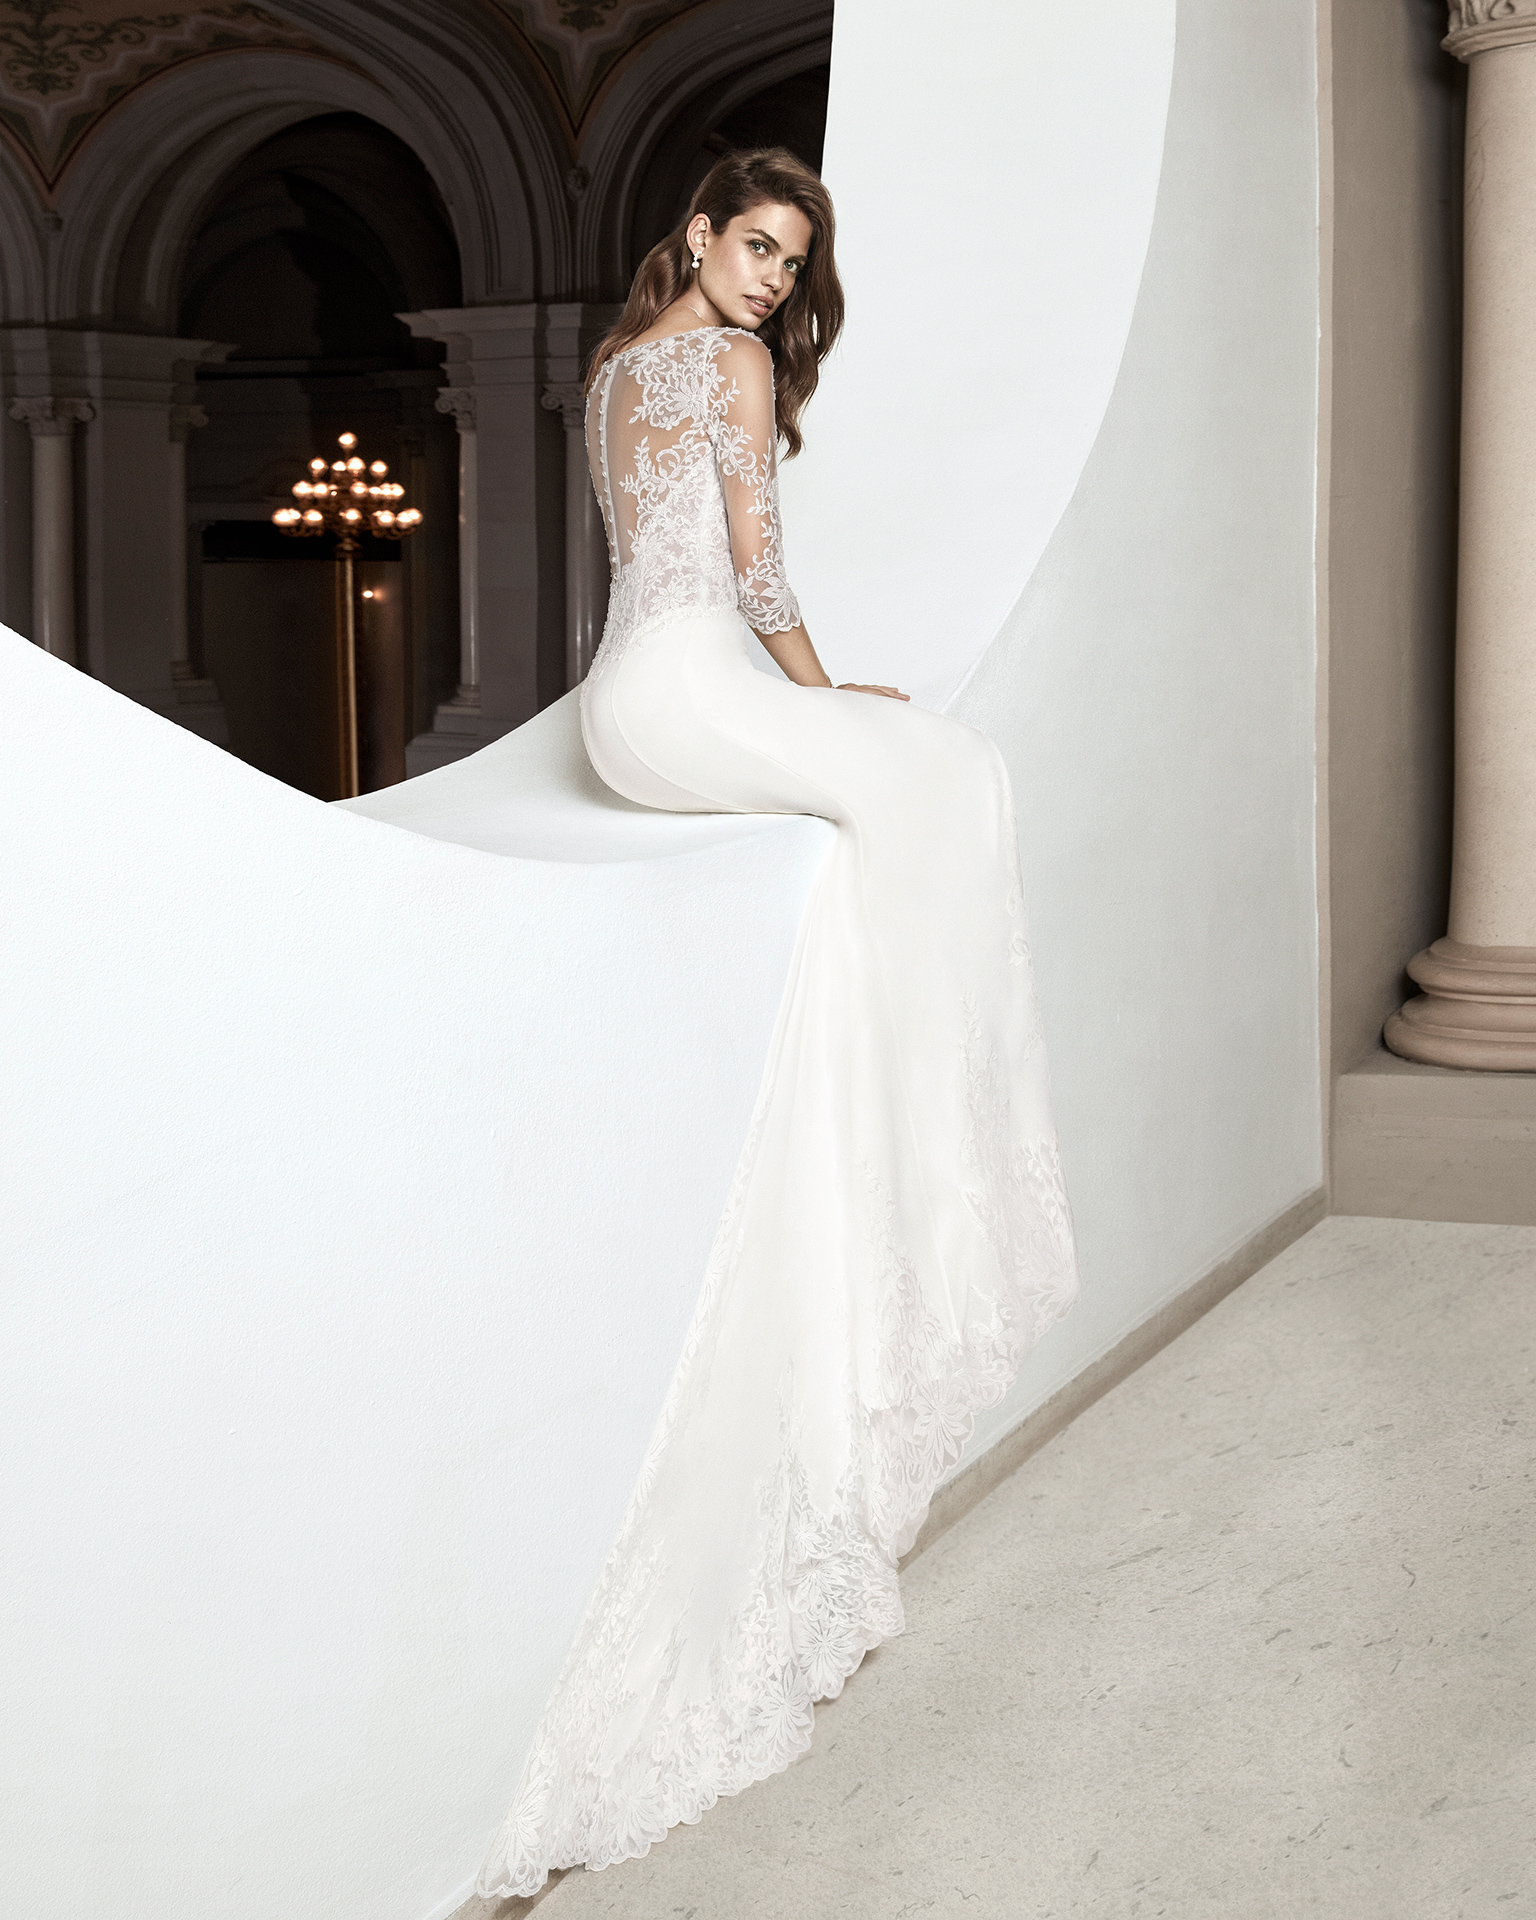 Sheath-style wedding dress in crepe Georgette and beaded lace. With V-neckline and three-quarter sleeves in tulle and beaded lace. Available in natural. 2019 ALMA_NOVIA Collection.